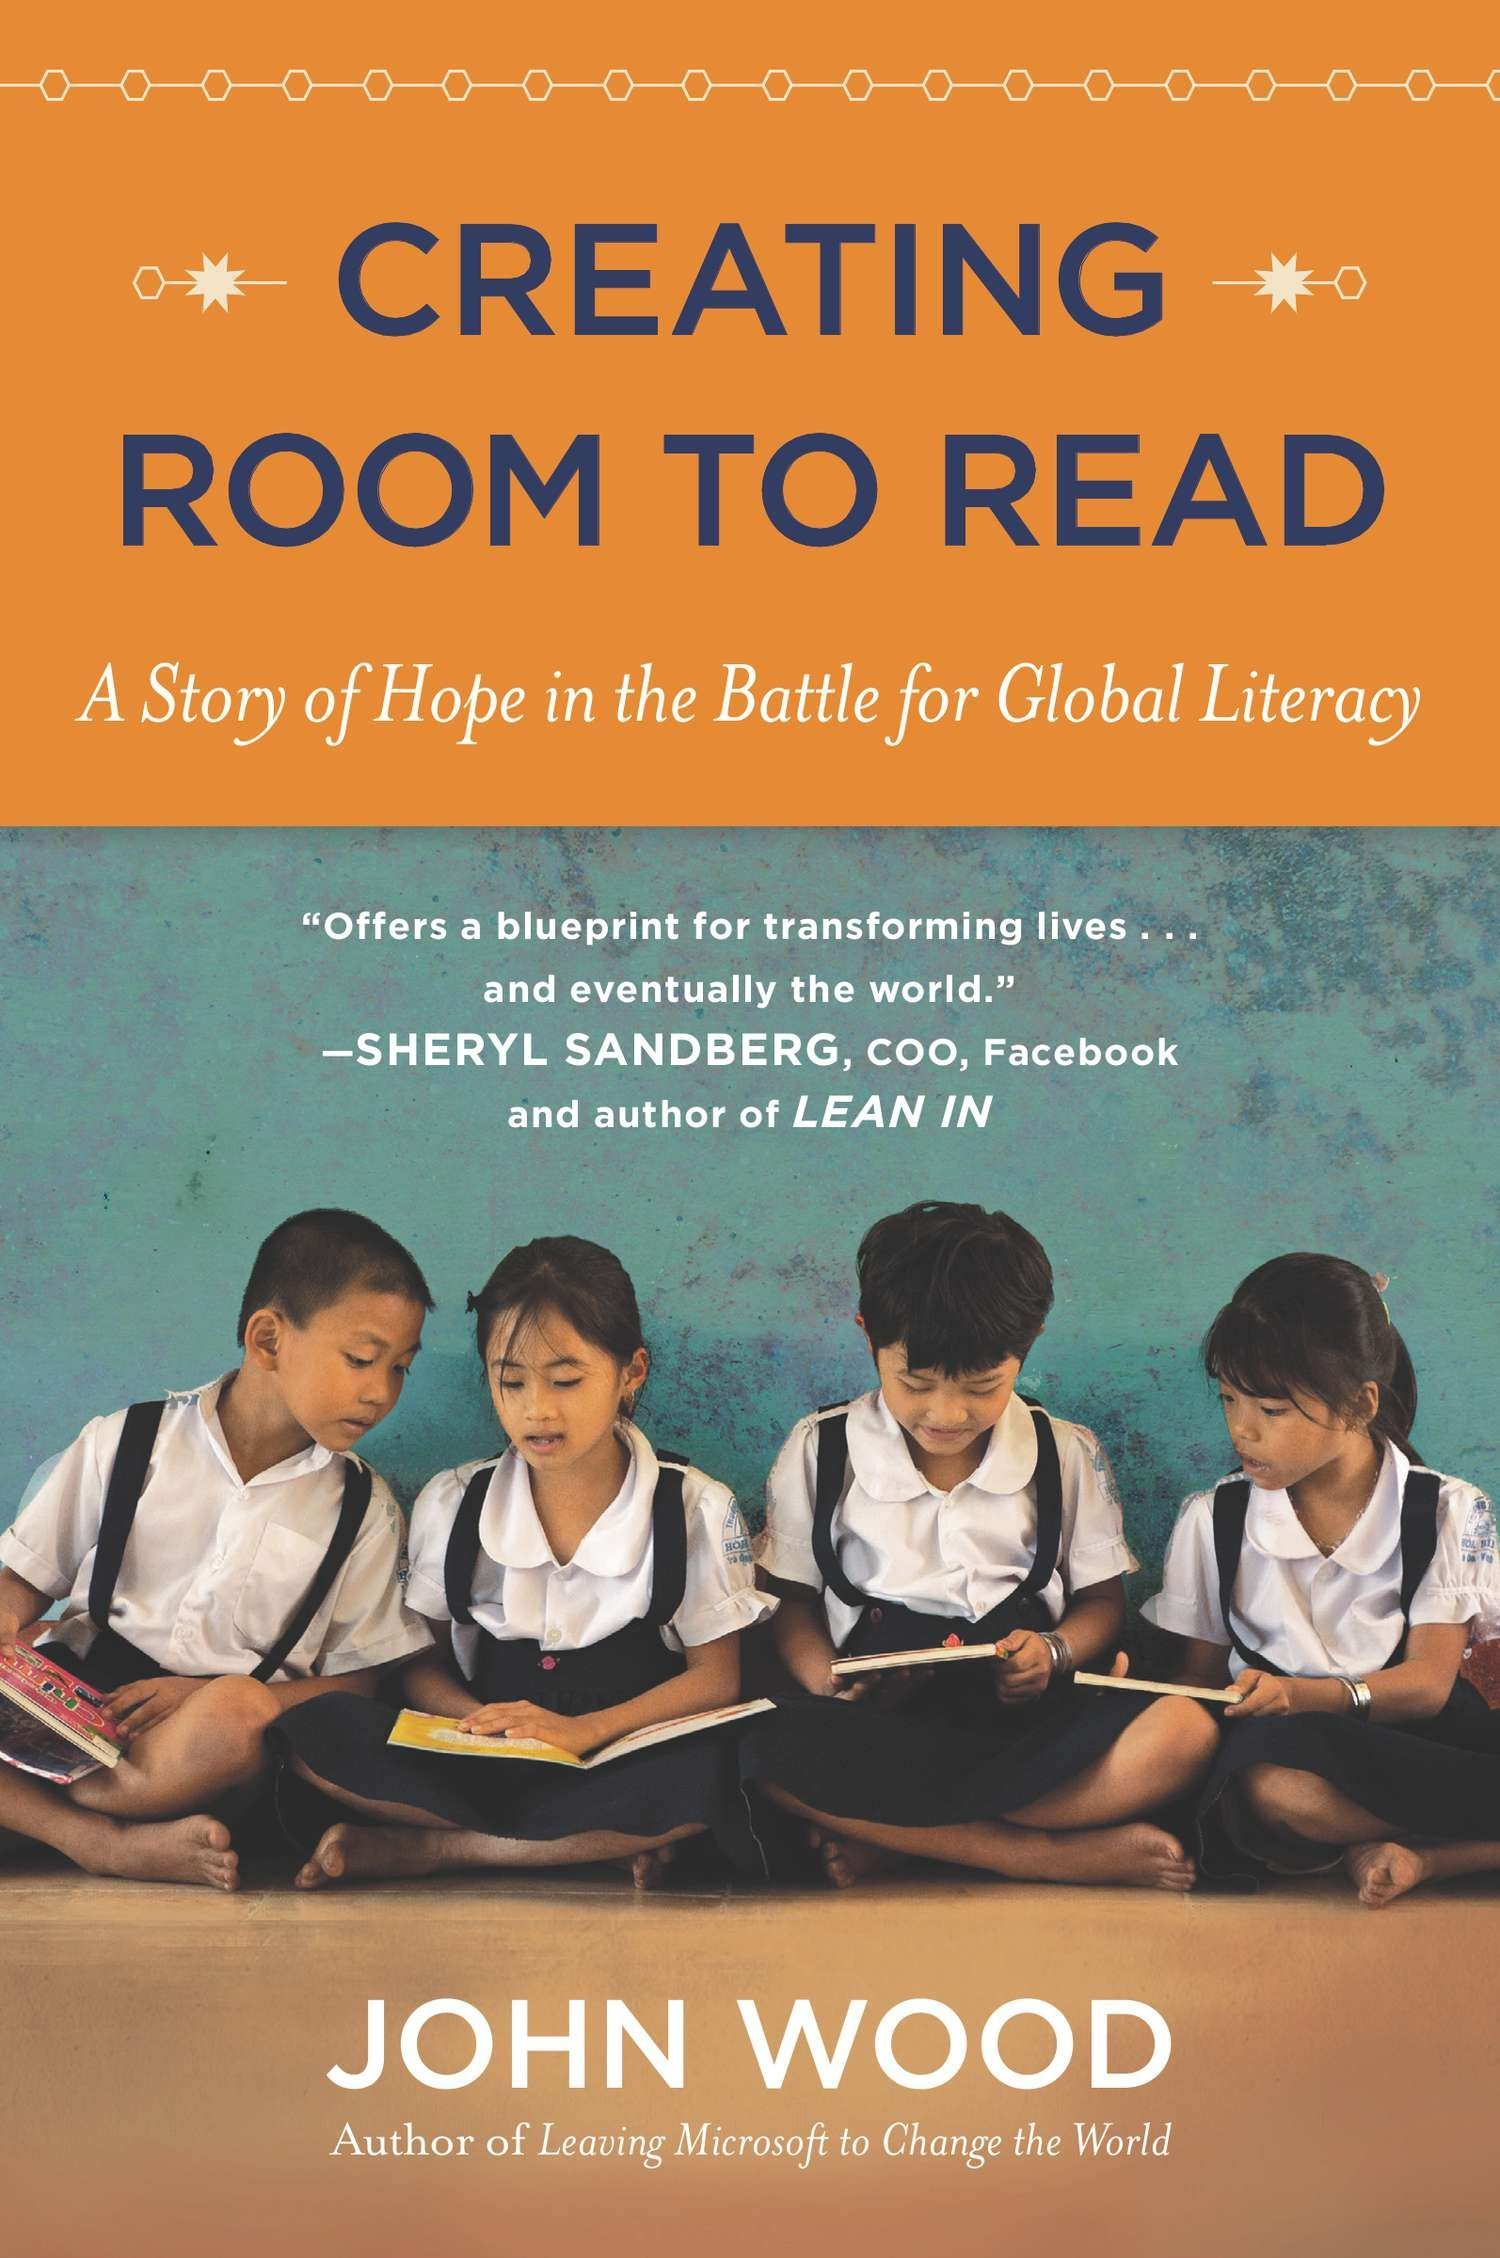 Creating room to read a story of hope in the battle for global creating room to read a story of hope in the battle for global literacy john wood 9780142180501 amazon books malvernweather Choice Image